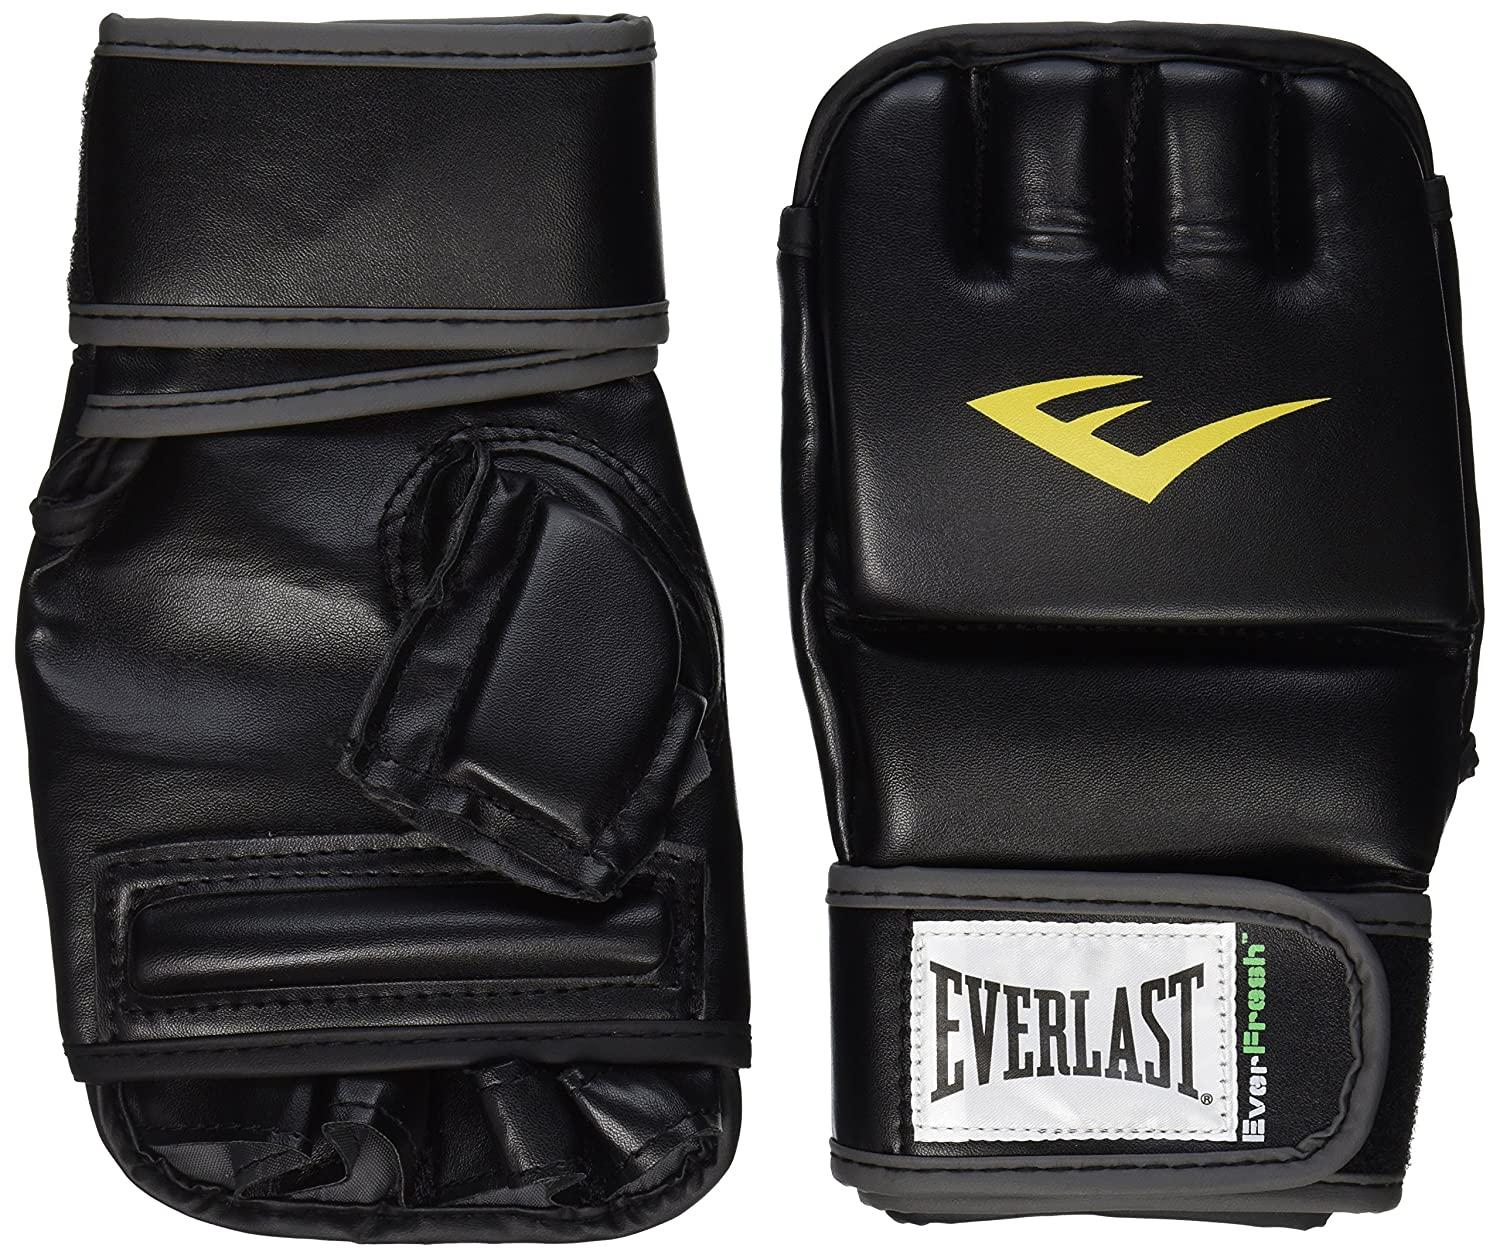 Everlast Train Advanced Wristwrap Heavy Bag Gloves EVEUM 4301